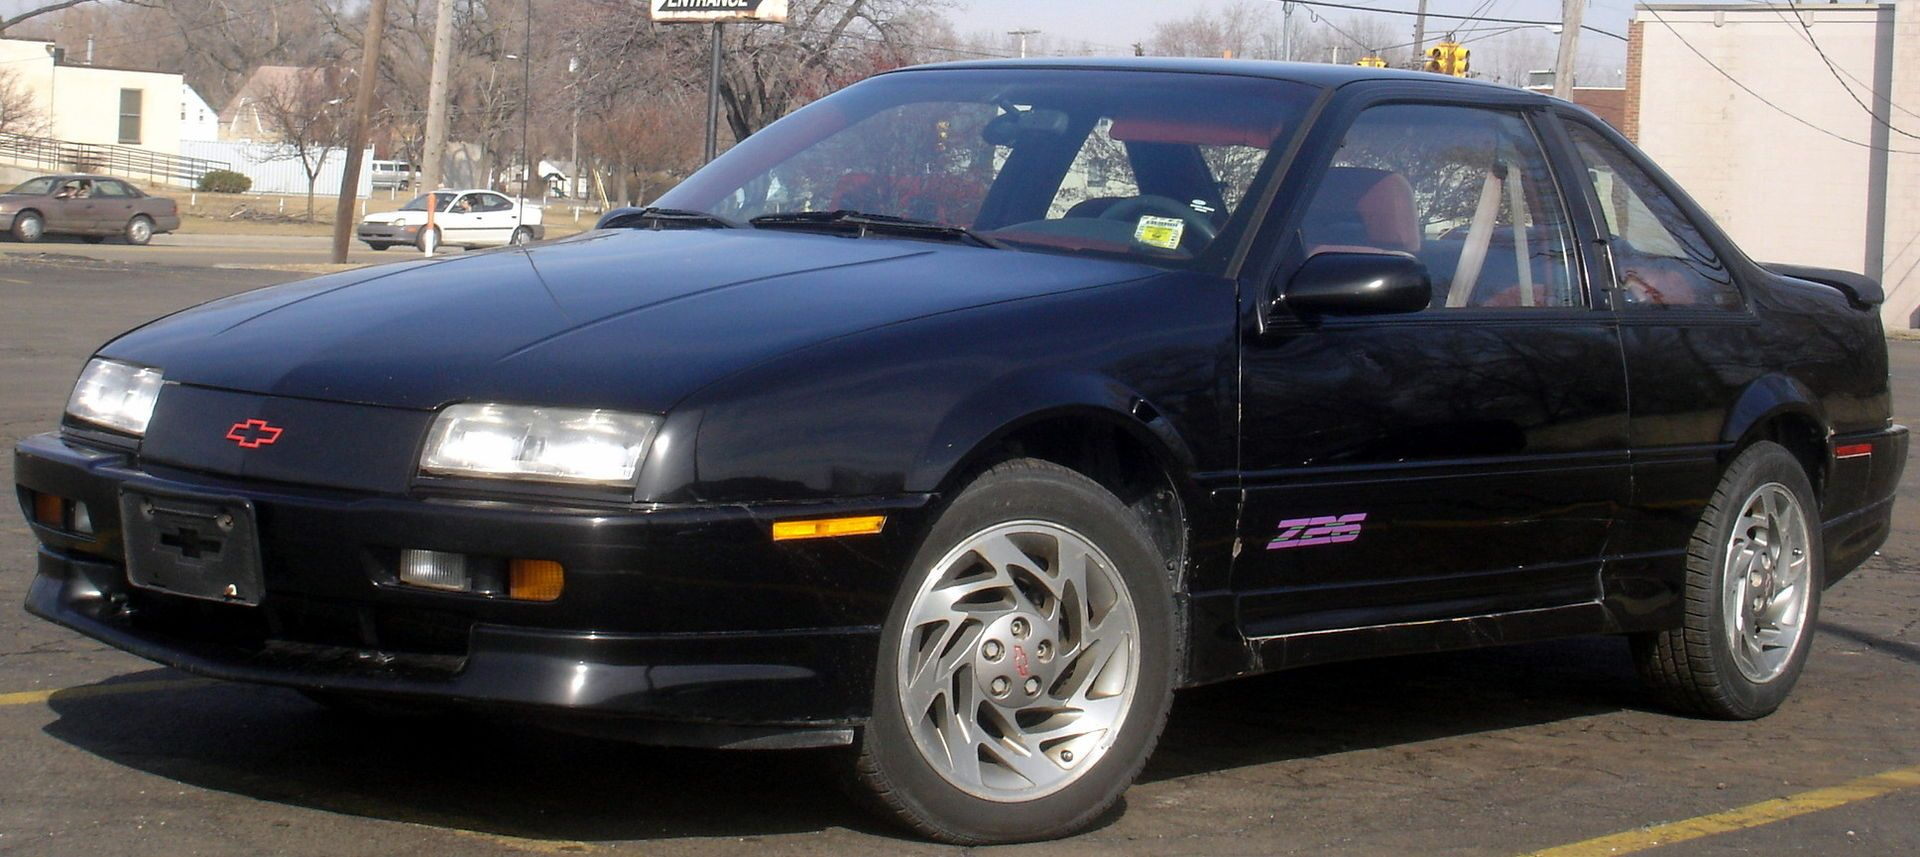 1996 Chevrolet Beretta 2 Dr Z26 Coupe, wow did I love these cars ...